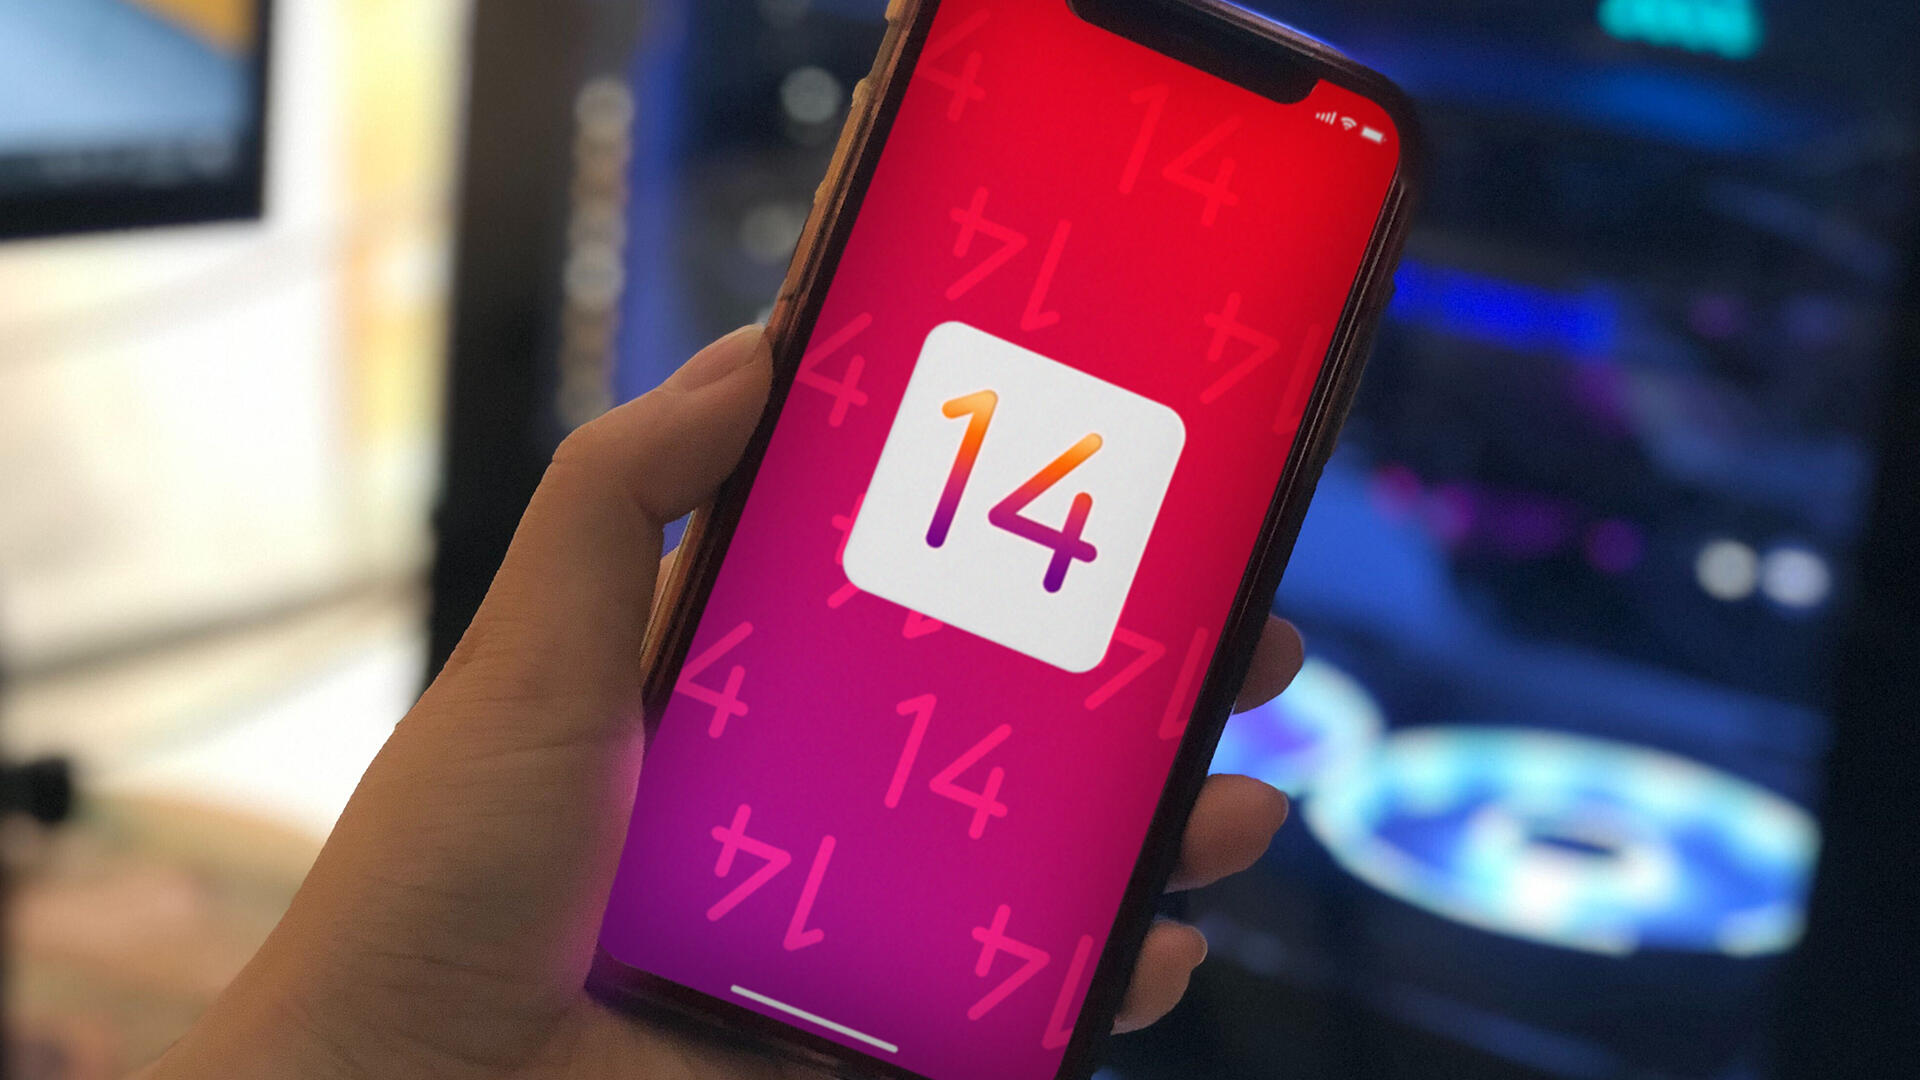 Video: iOS 14: Everything we know